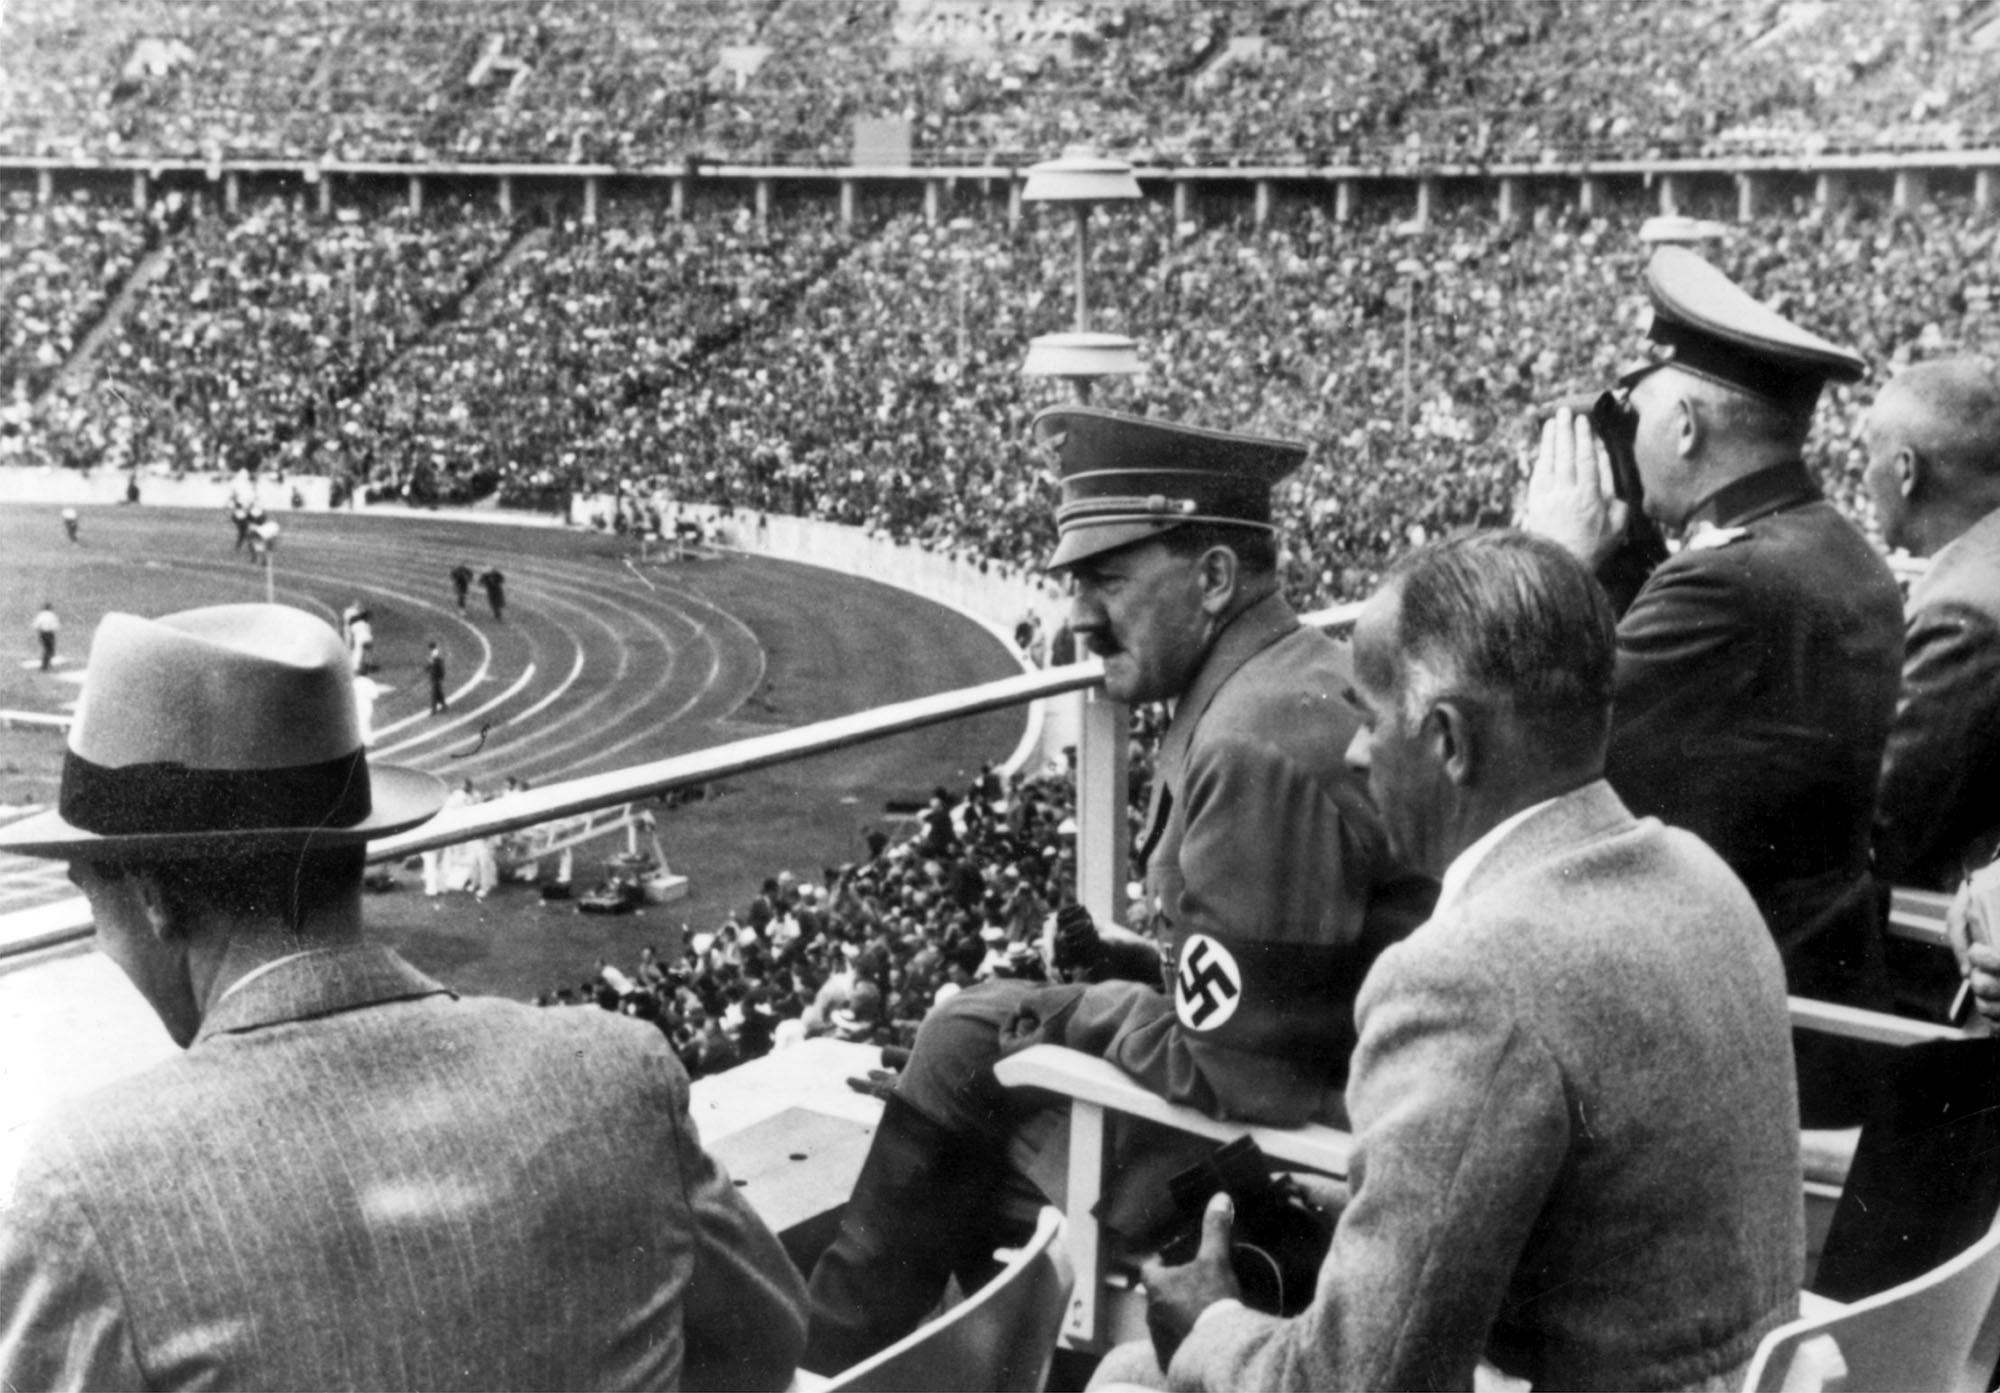 Dr. Joseph Goebbels, German Chancellor Adolf Hitler, Reichs Sports Leader Hans von Tschammer und Osten and Generalfeldmarschall Werner von Blomberg observe the Olympic Games in Berlin, Germany in August 1936.